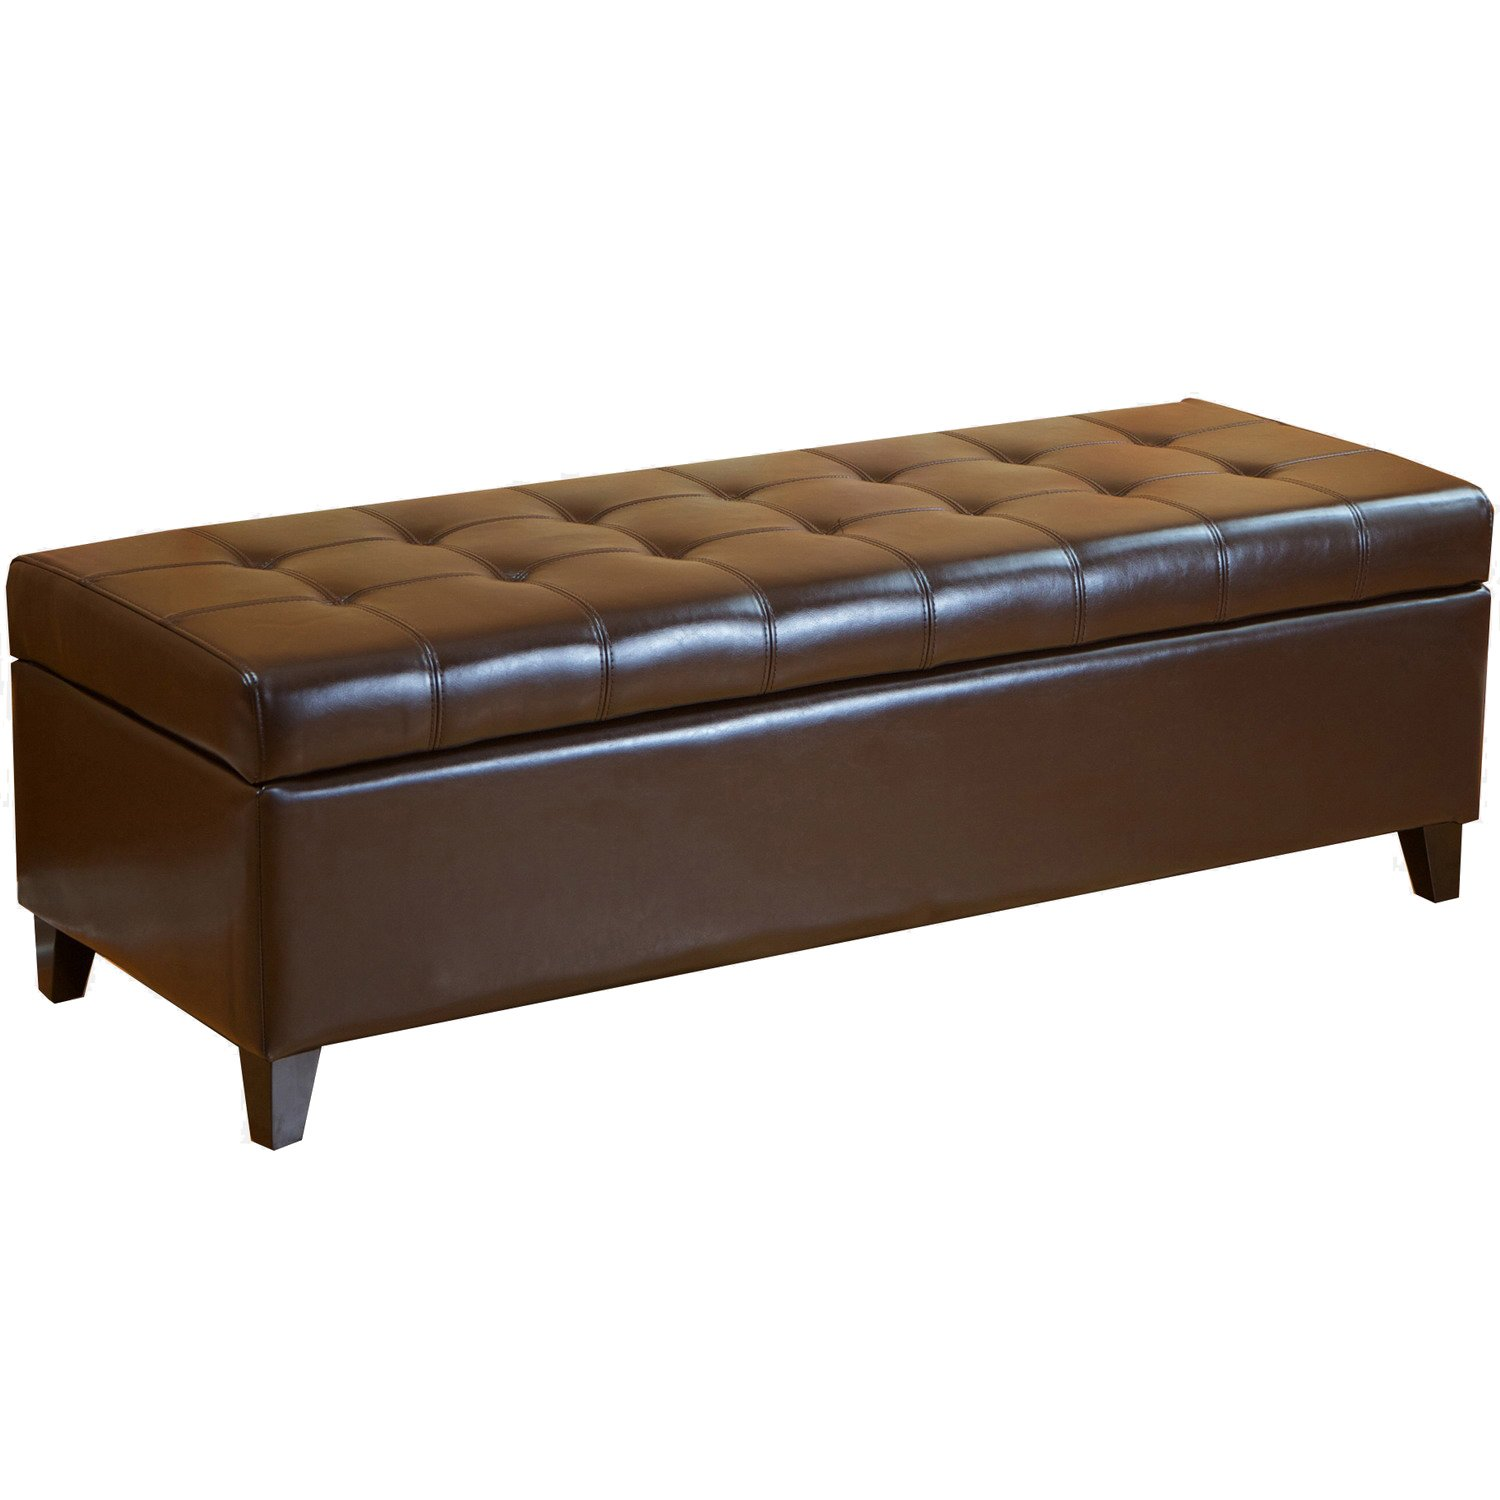 end of bed storage benches ottomans and chests olivia 39 s place